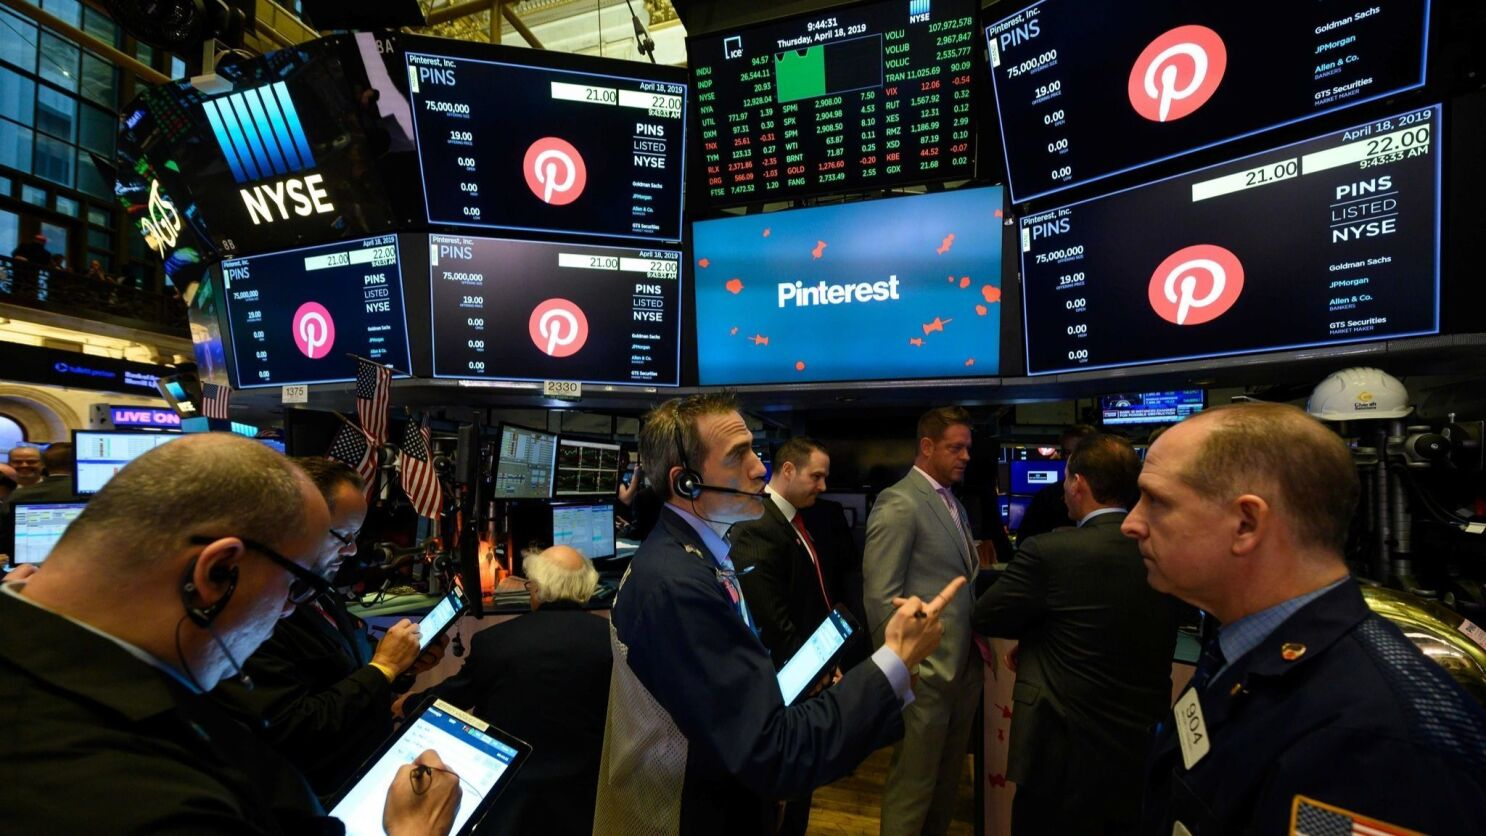 Pinterest IPO Shares soar in their stock market debut   Los ...